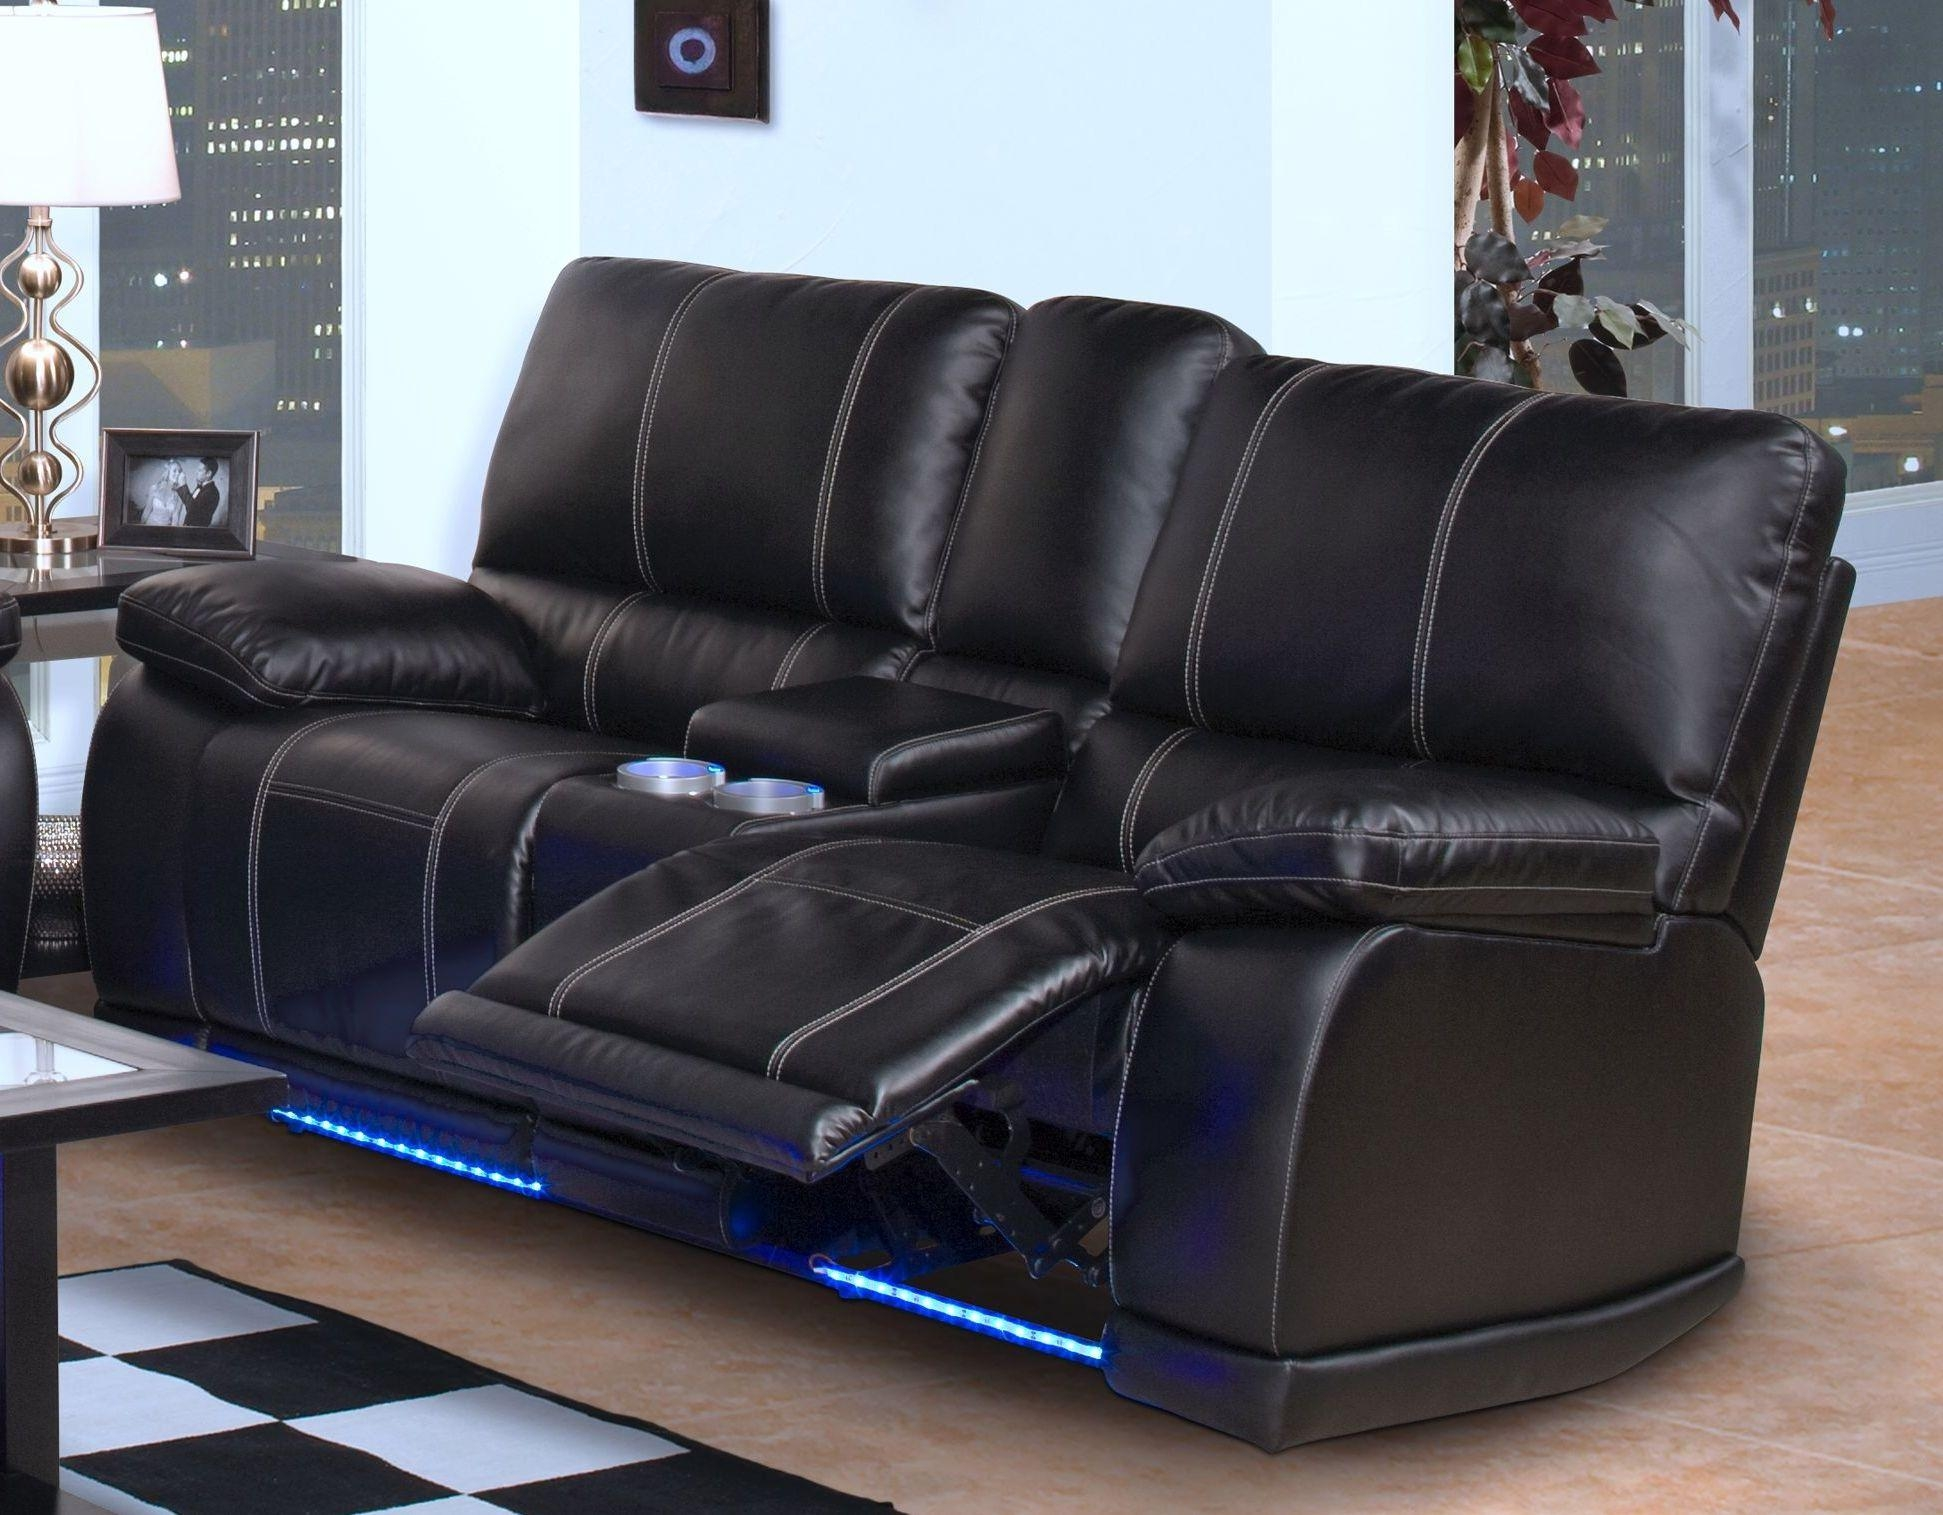 Sofas Center : Leather Reclining Sofa Costco Pulaski And Loveseat In Sofas With Drink Holder (Image 20 of 20)